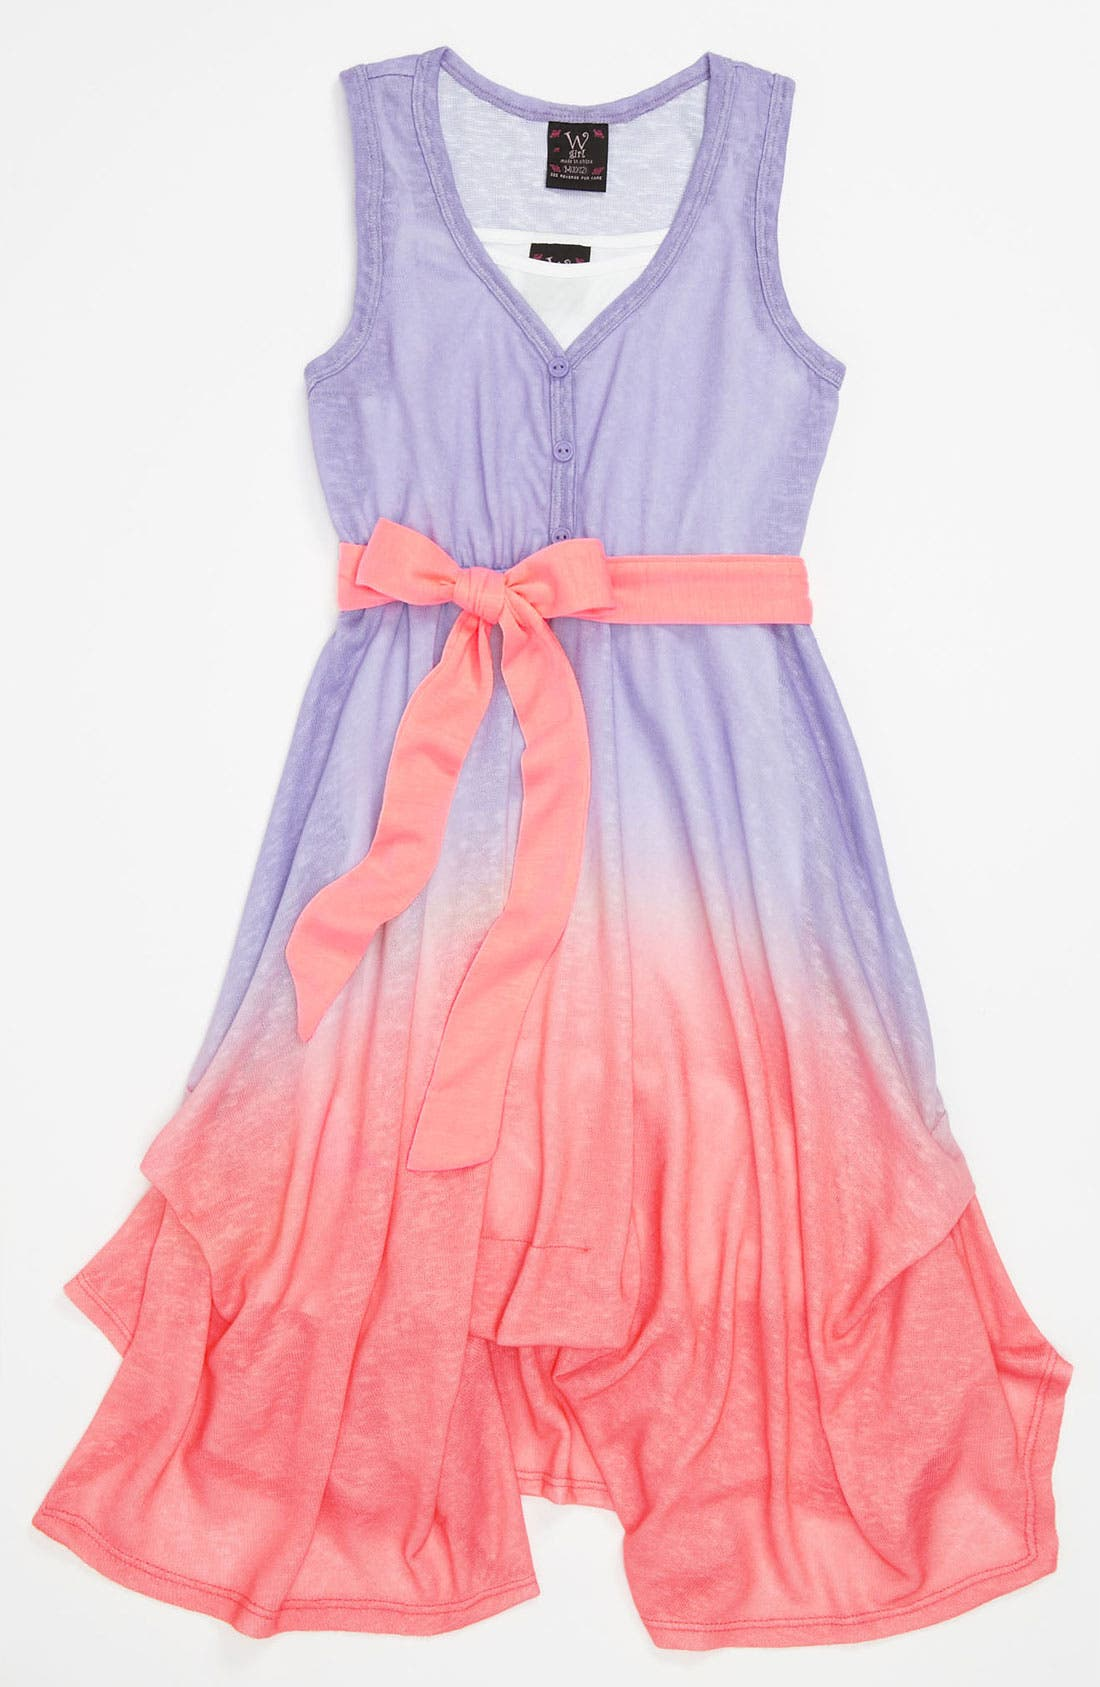 Main Image - W Girl Ombré Dress (Little Girls & Big Girls)